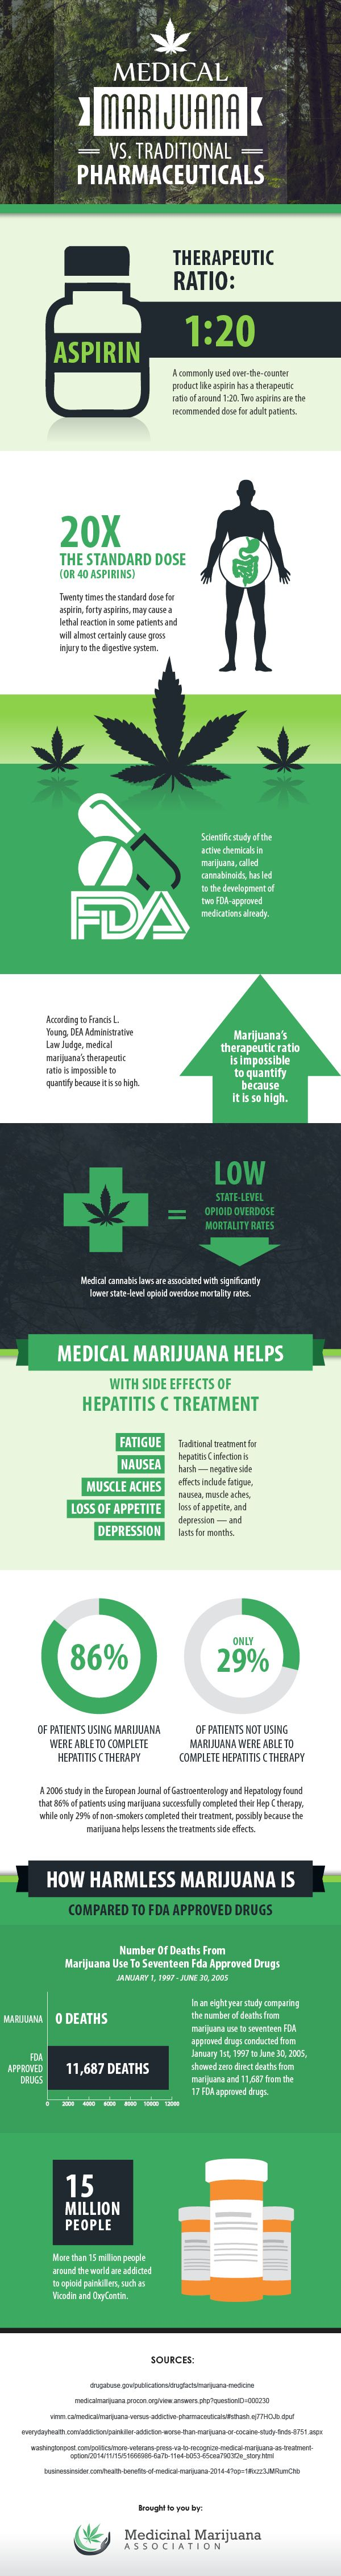 [Infographic]_Medical_Marijuana_vs._Traditional_Pharmaceuticals-_How_They_Stack_Up